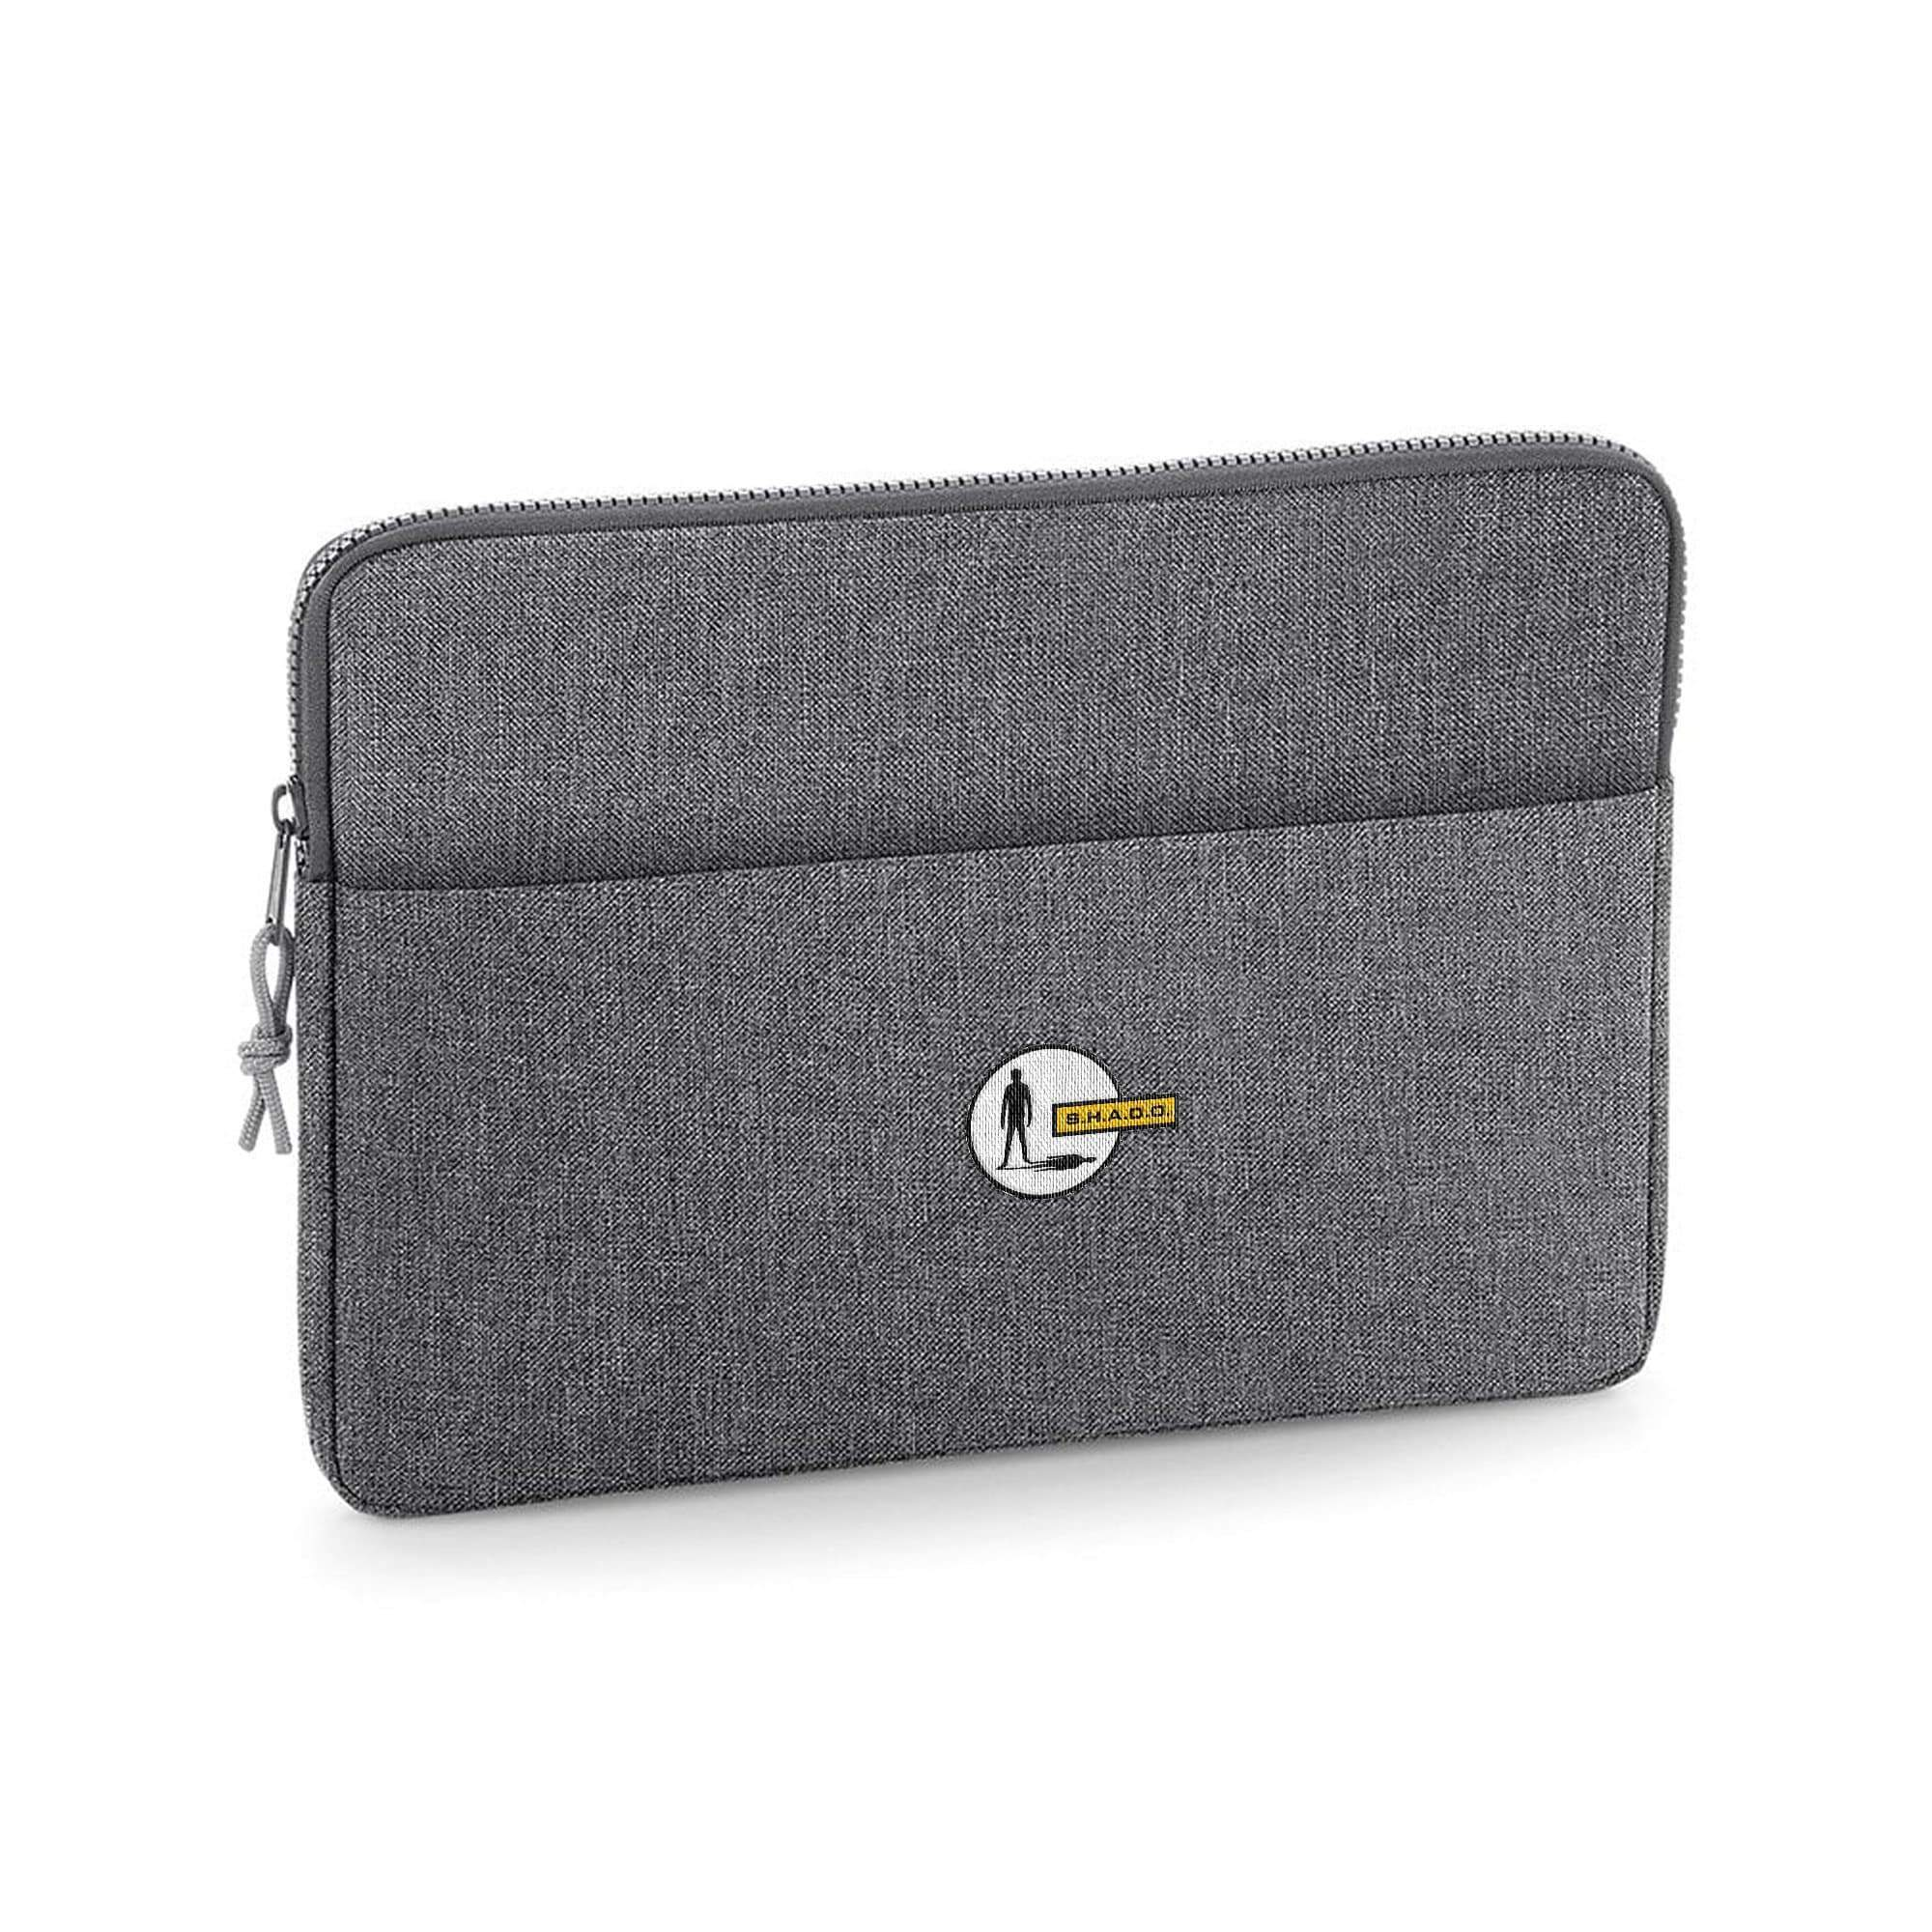 UFO/SHADO Laptop Case [Official & Exclusive] - The Gerry Anderson Store